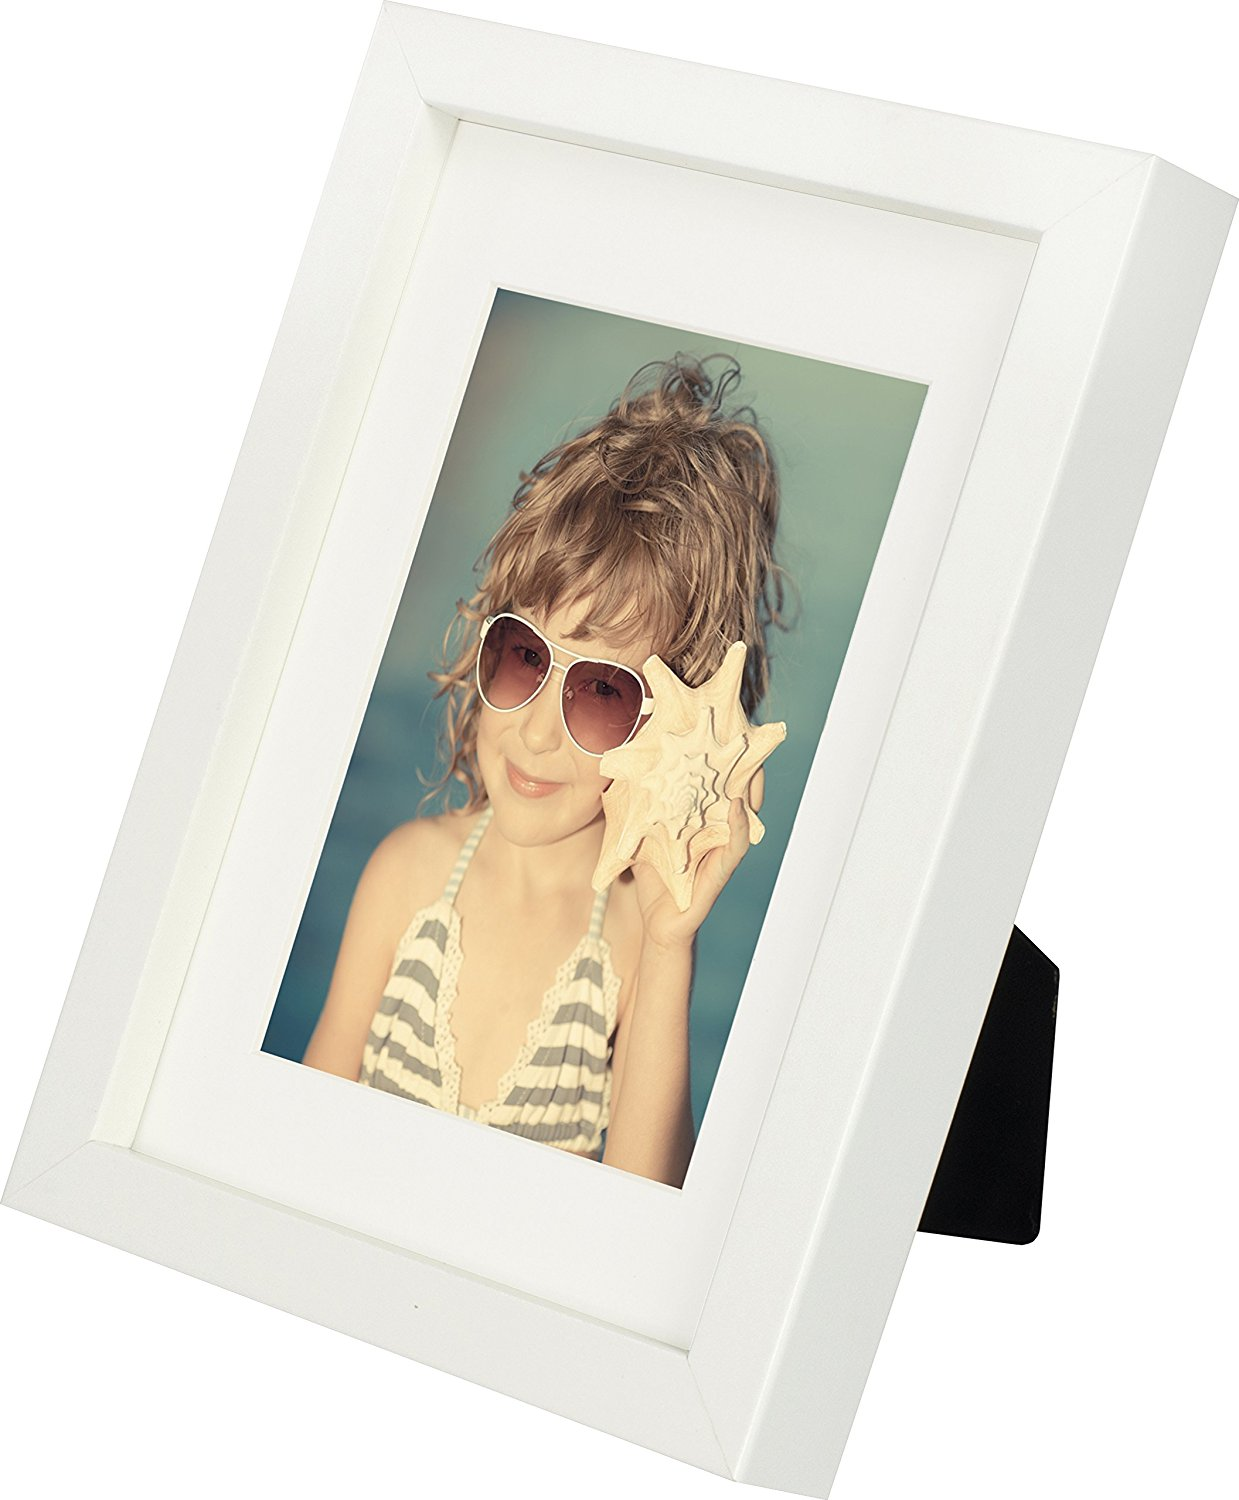 5 x 7-Inch Picture Photo Frame with mount for 4 x 6-Inch photo, WHITE